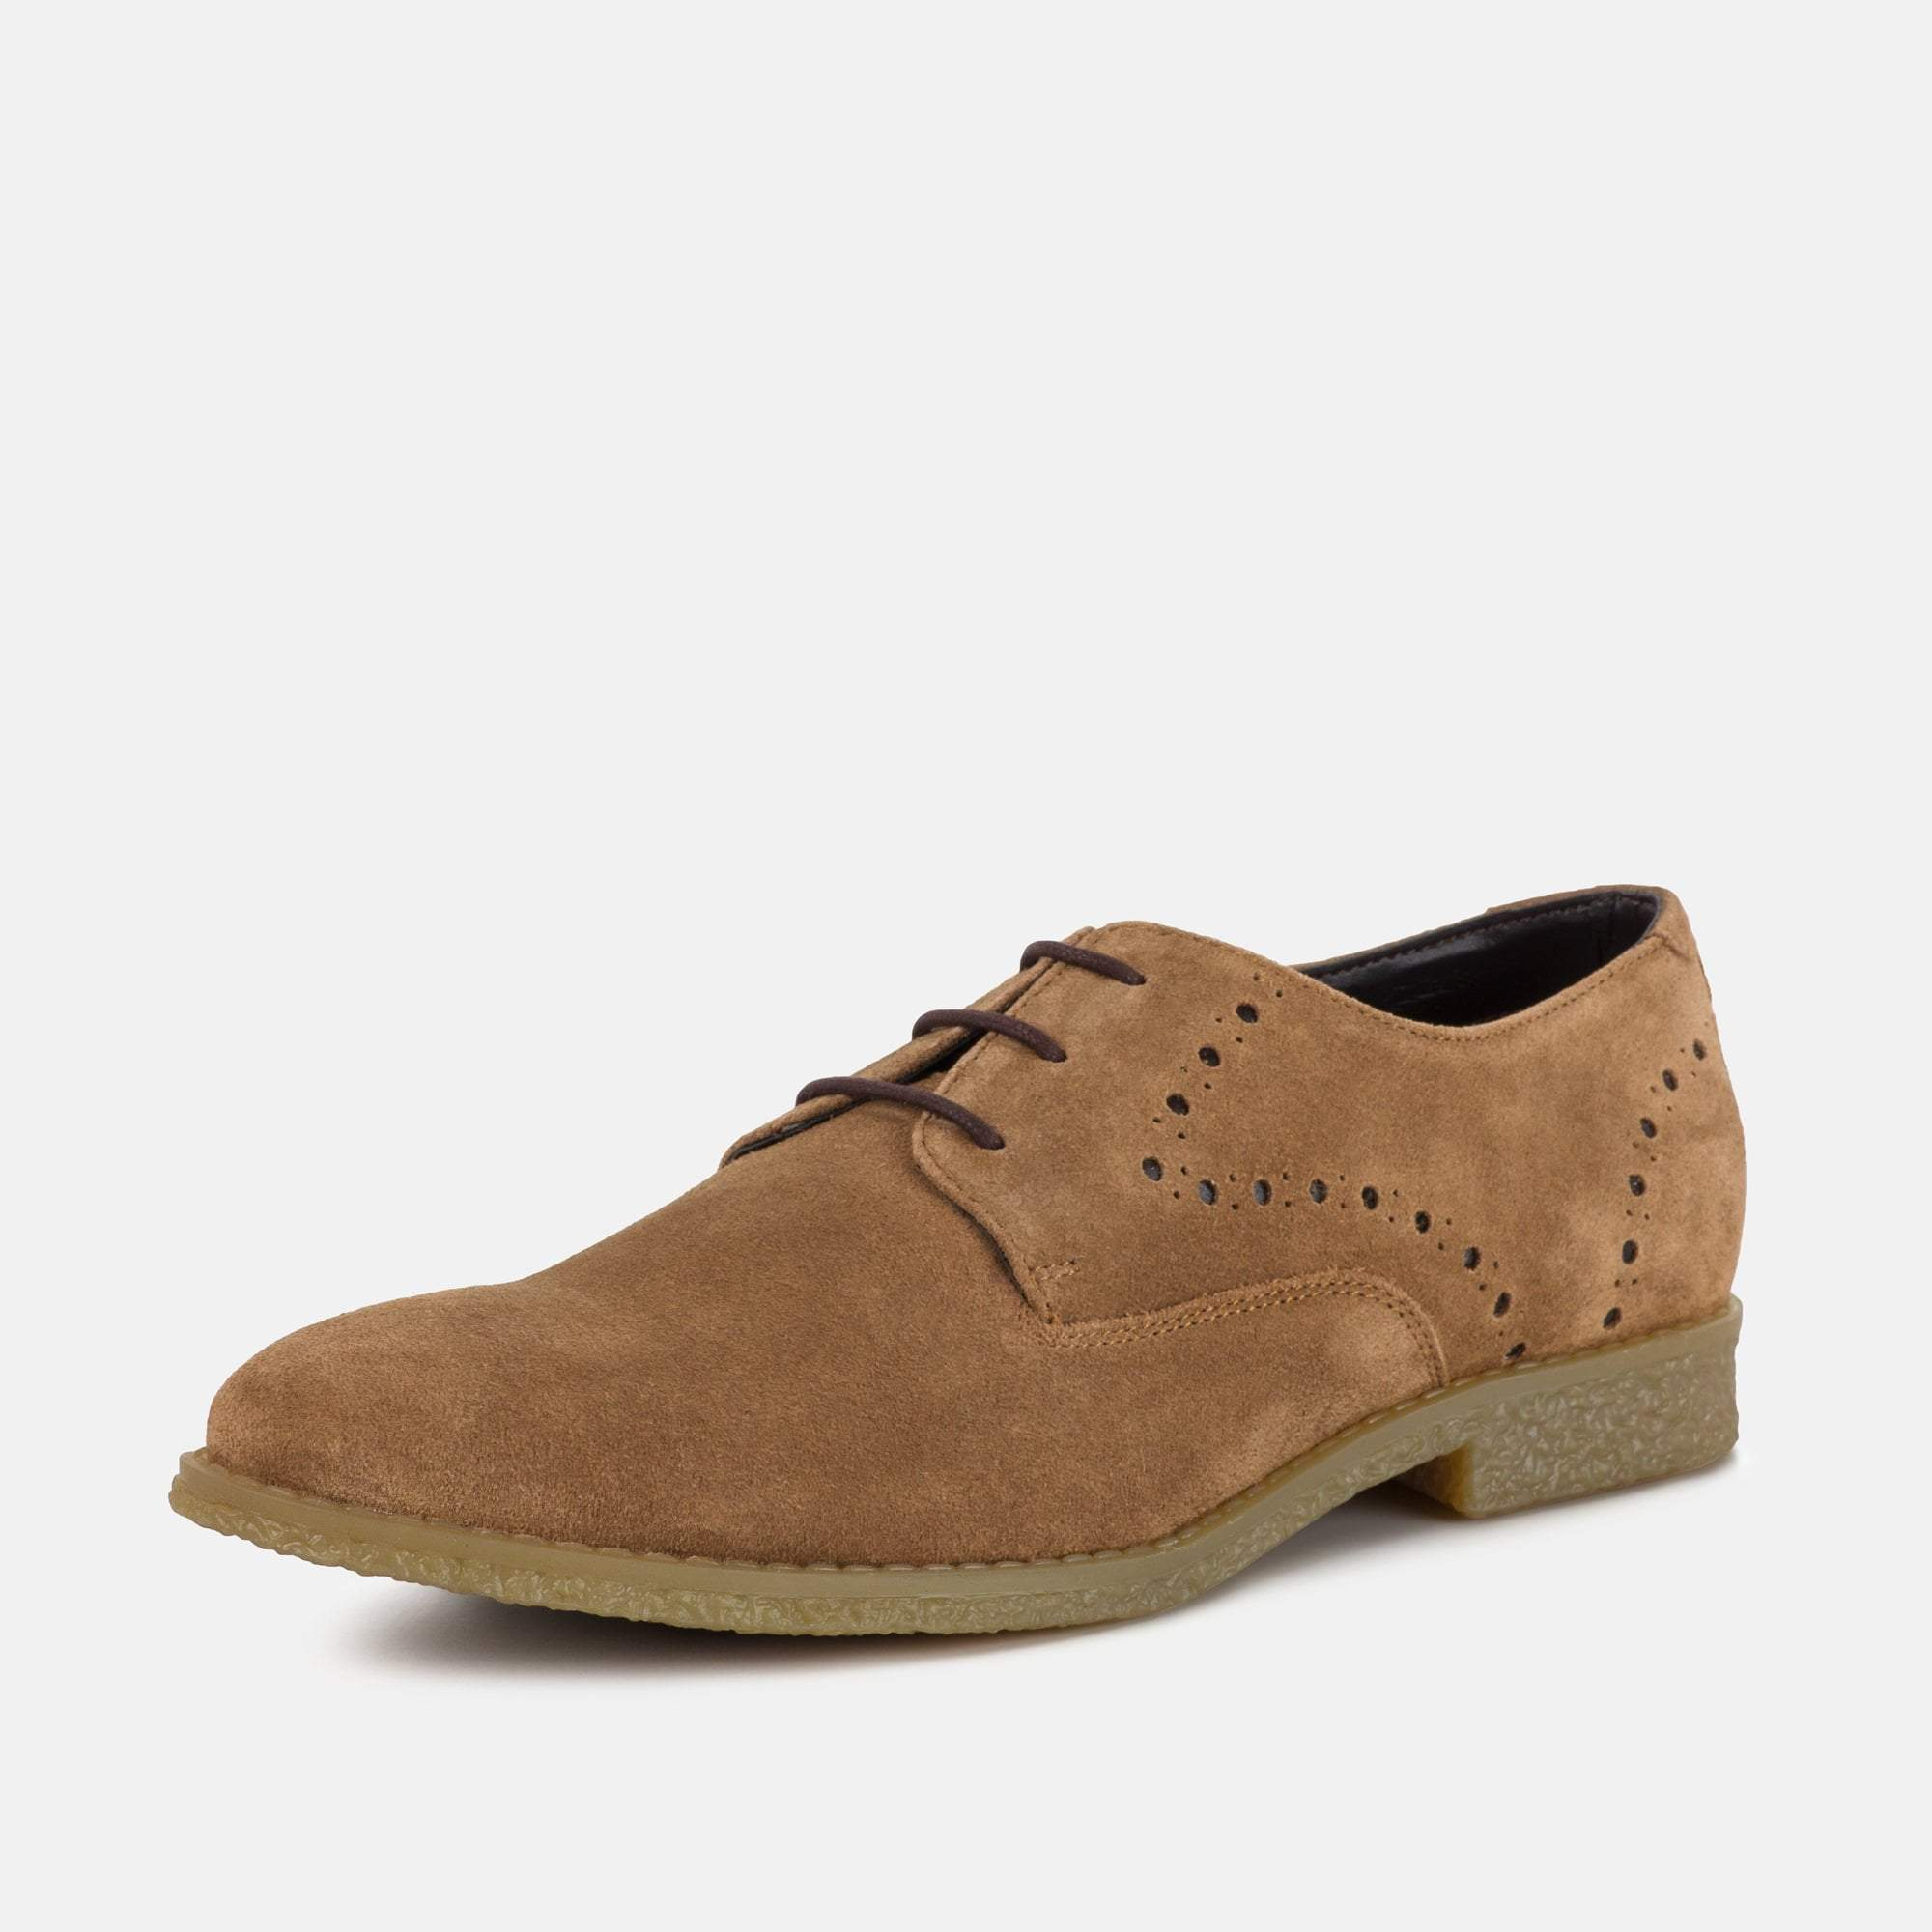 Redfoot Footwear UK 6 / EURO 39 / US 7 / Chestnut / Suede WILSON CHESTNUT